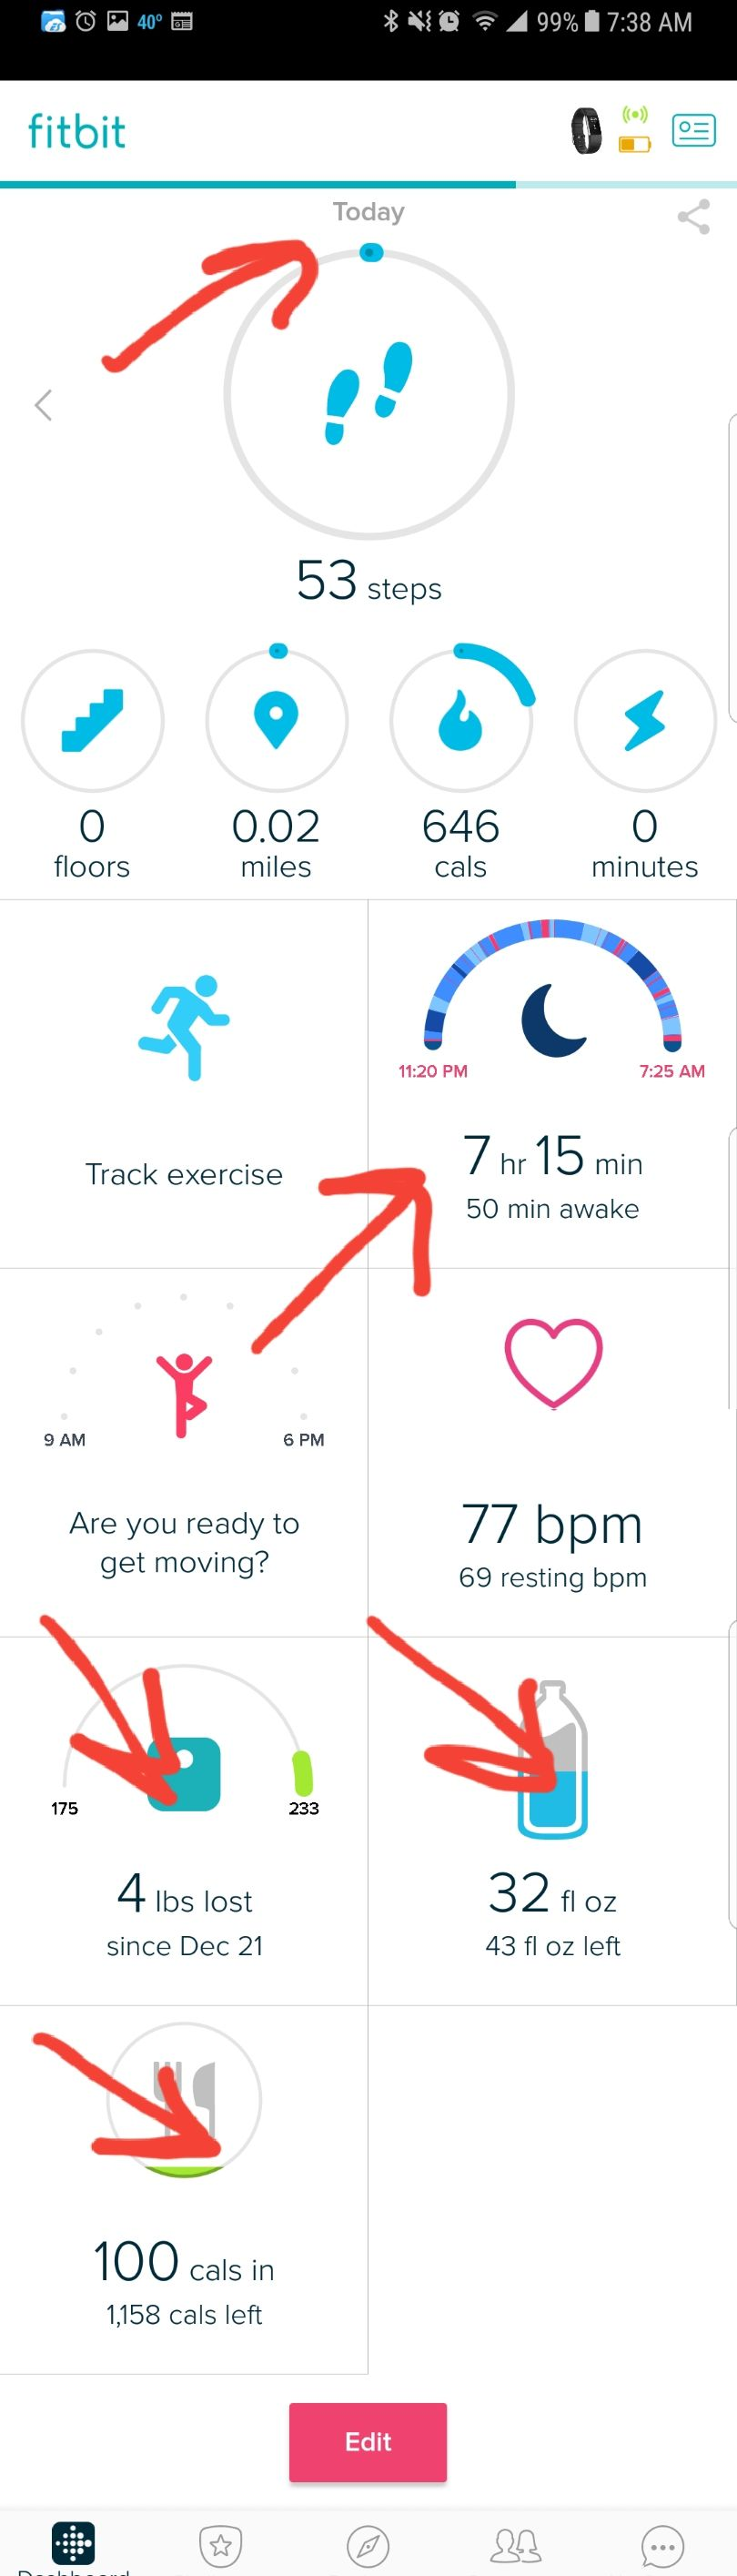 how to connect new fitbit to app